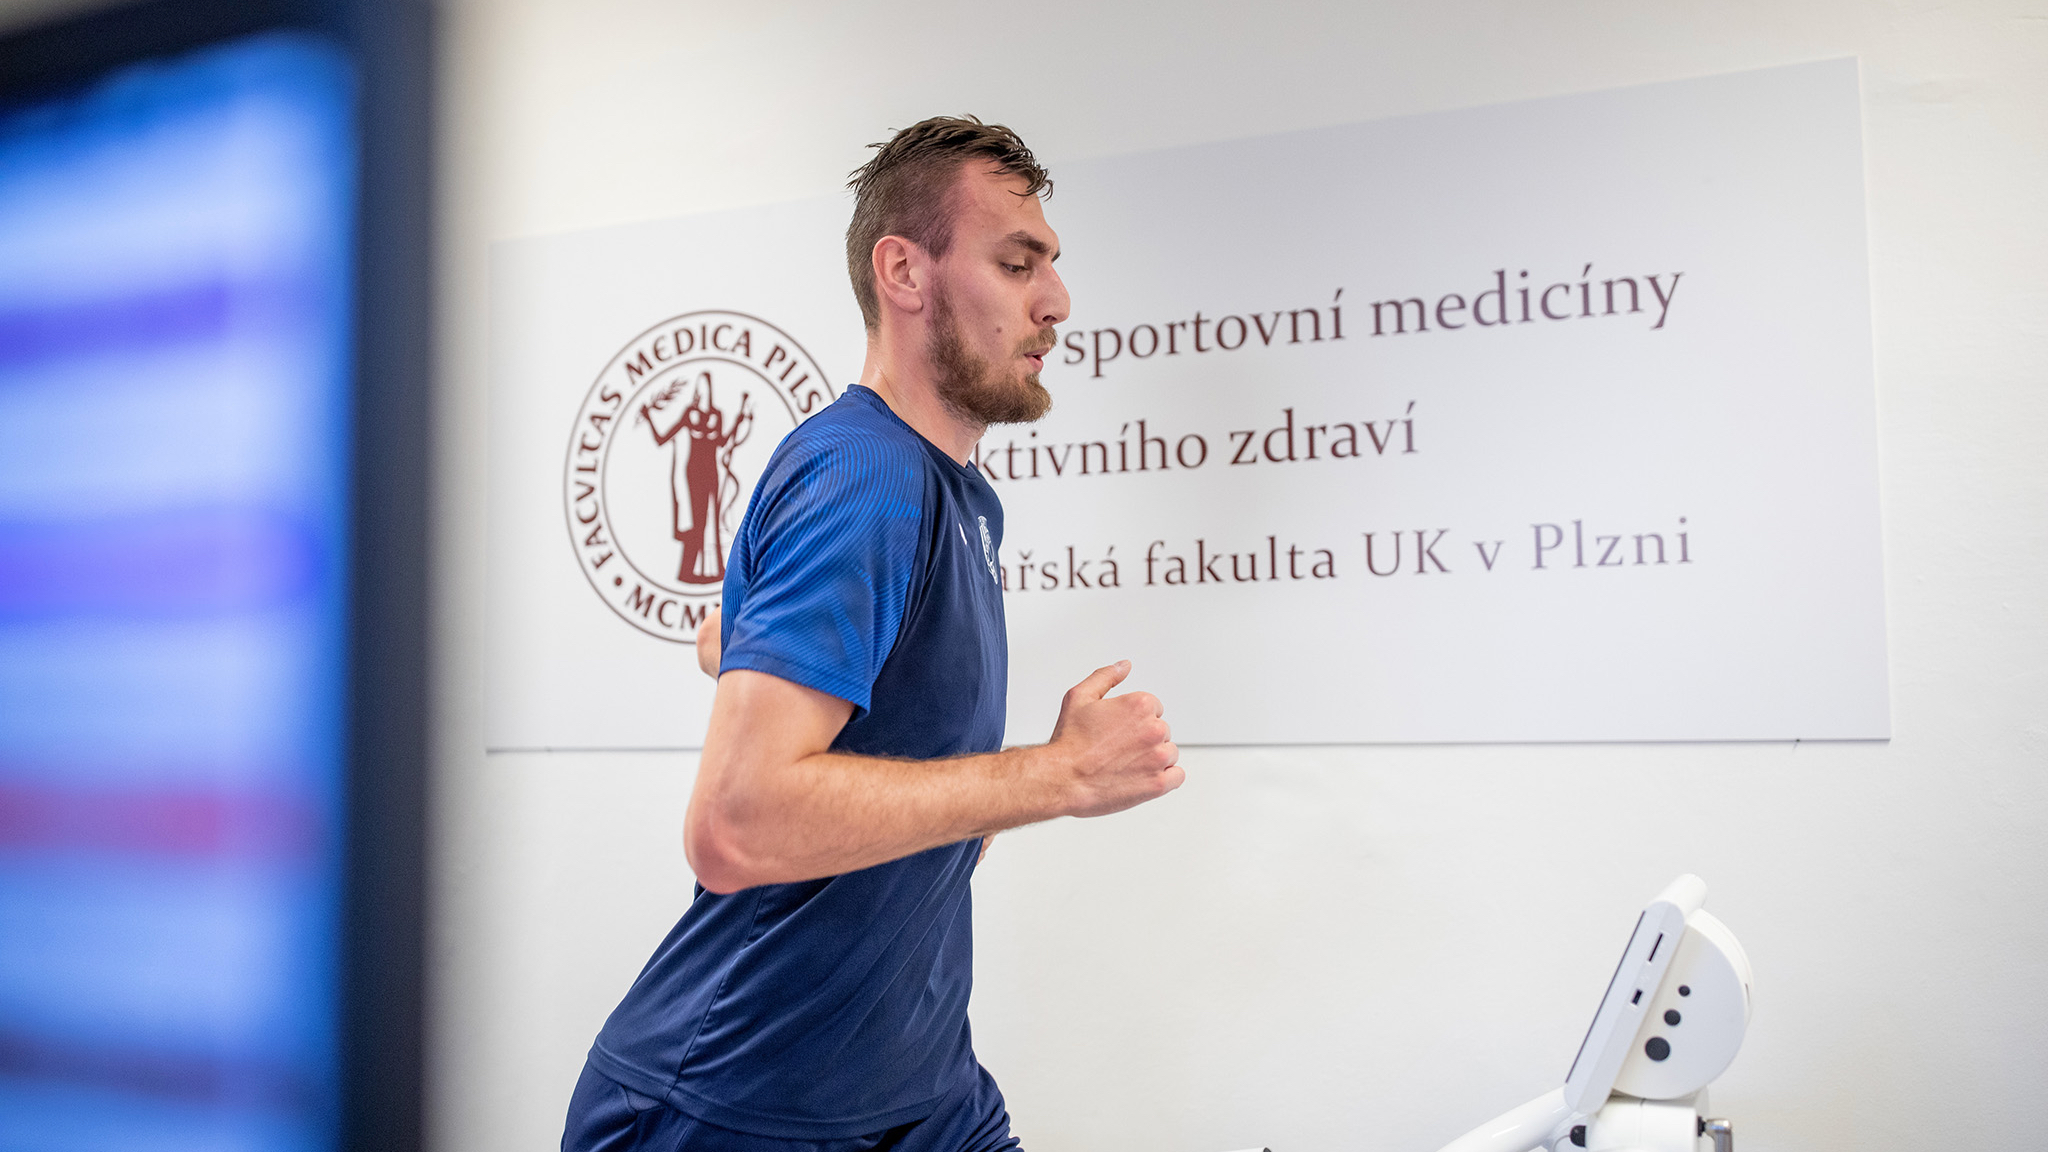 Viktoria Plzeň prepares for the spring with performance tests